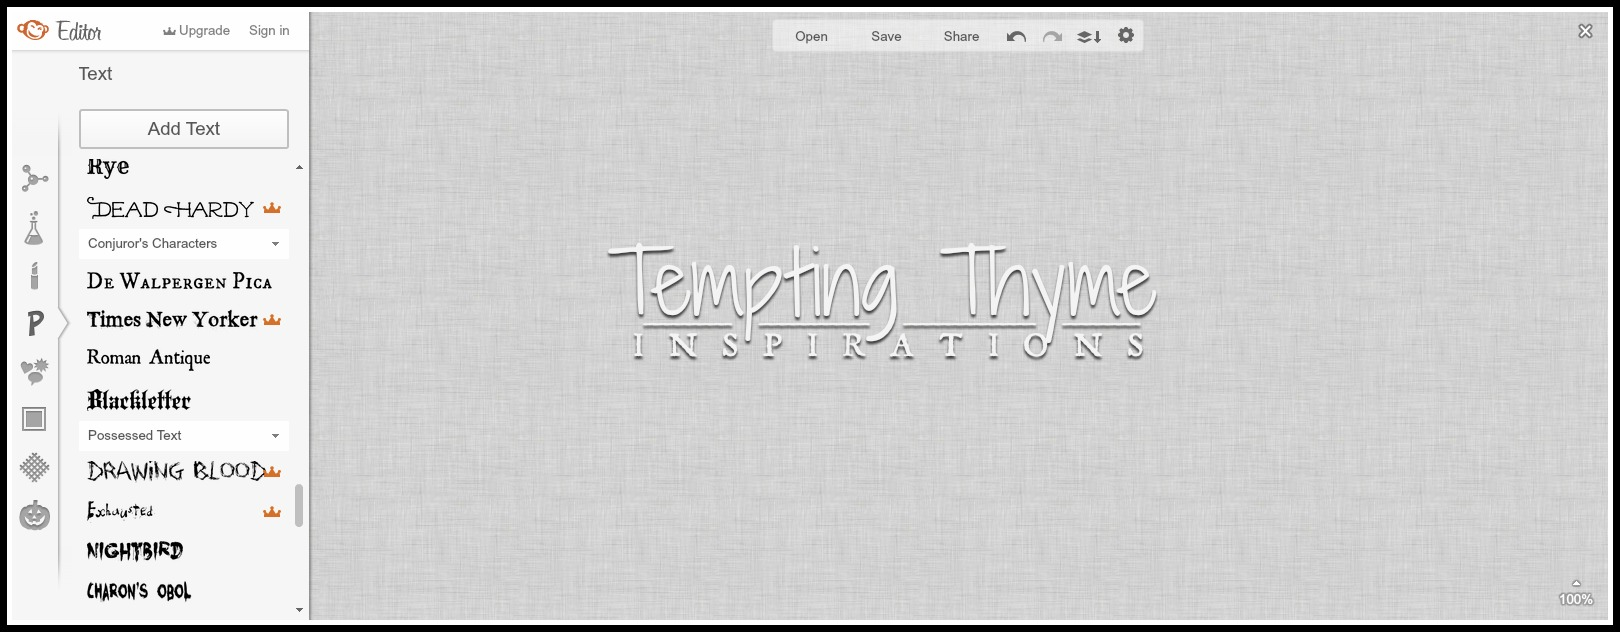 How to create a watermark-Tempting Thyme